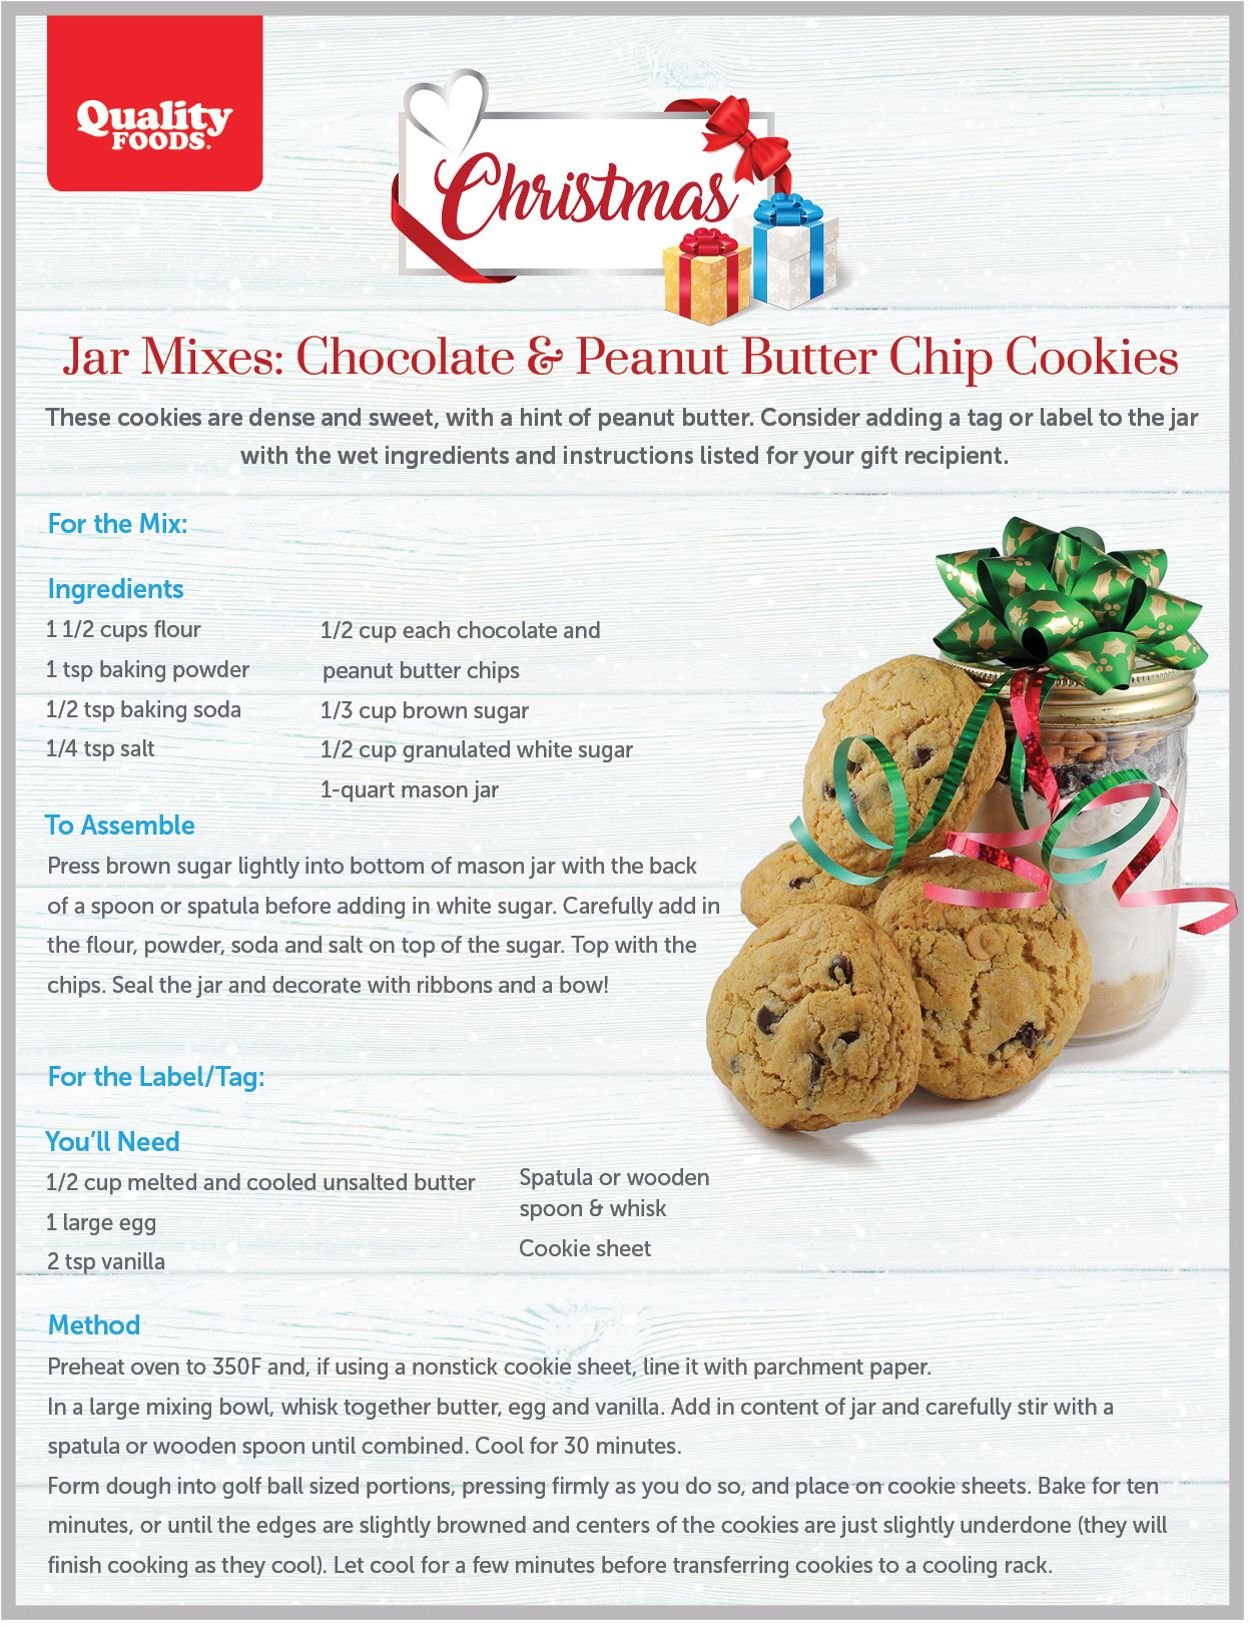 Quality Foods - Christmas 2020 Flyer - 12/07-12/24/2020 (Page 3)